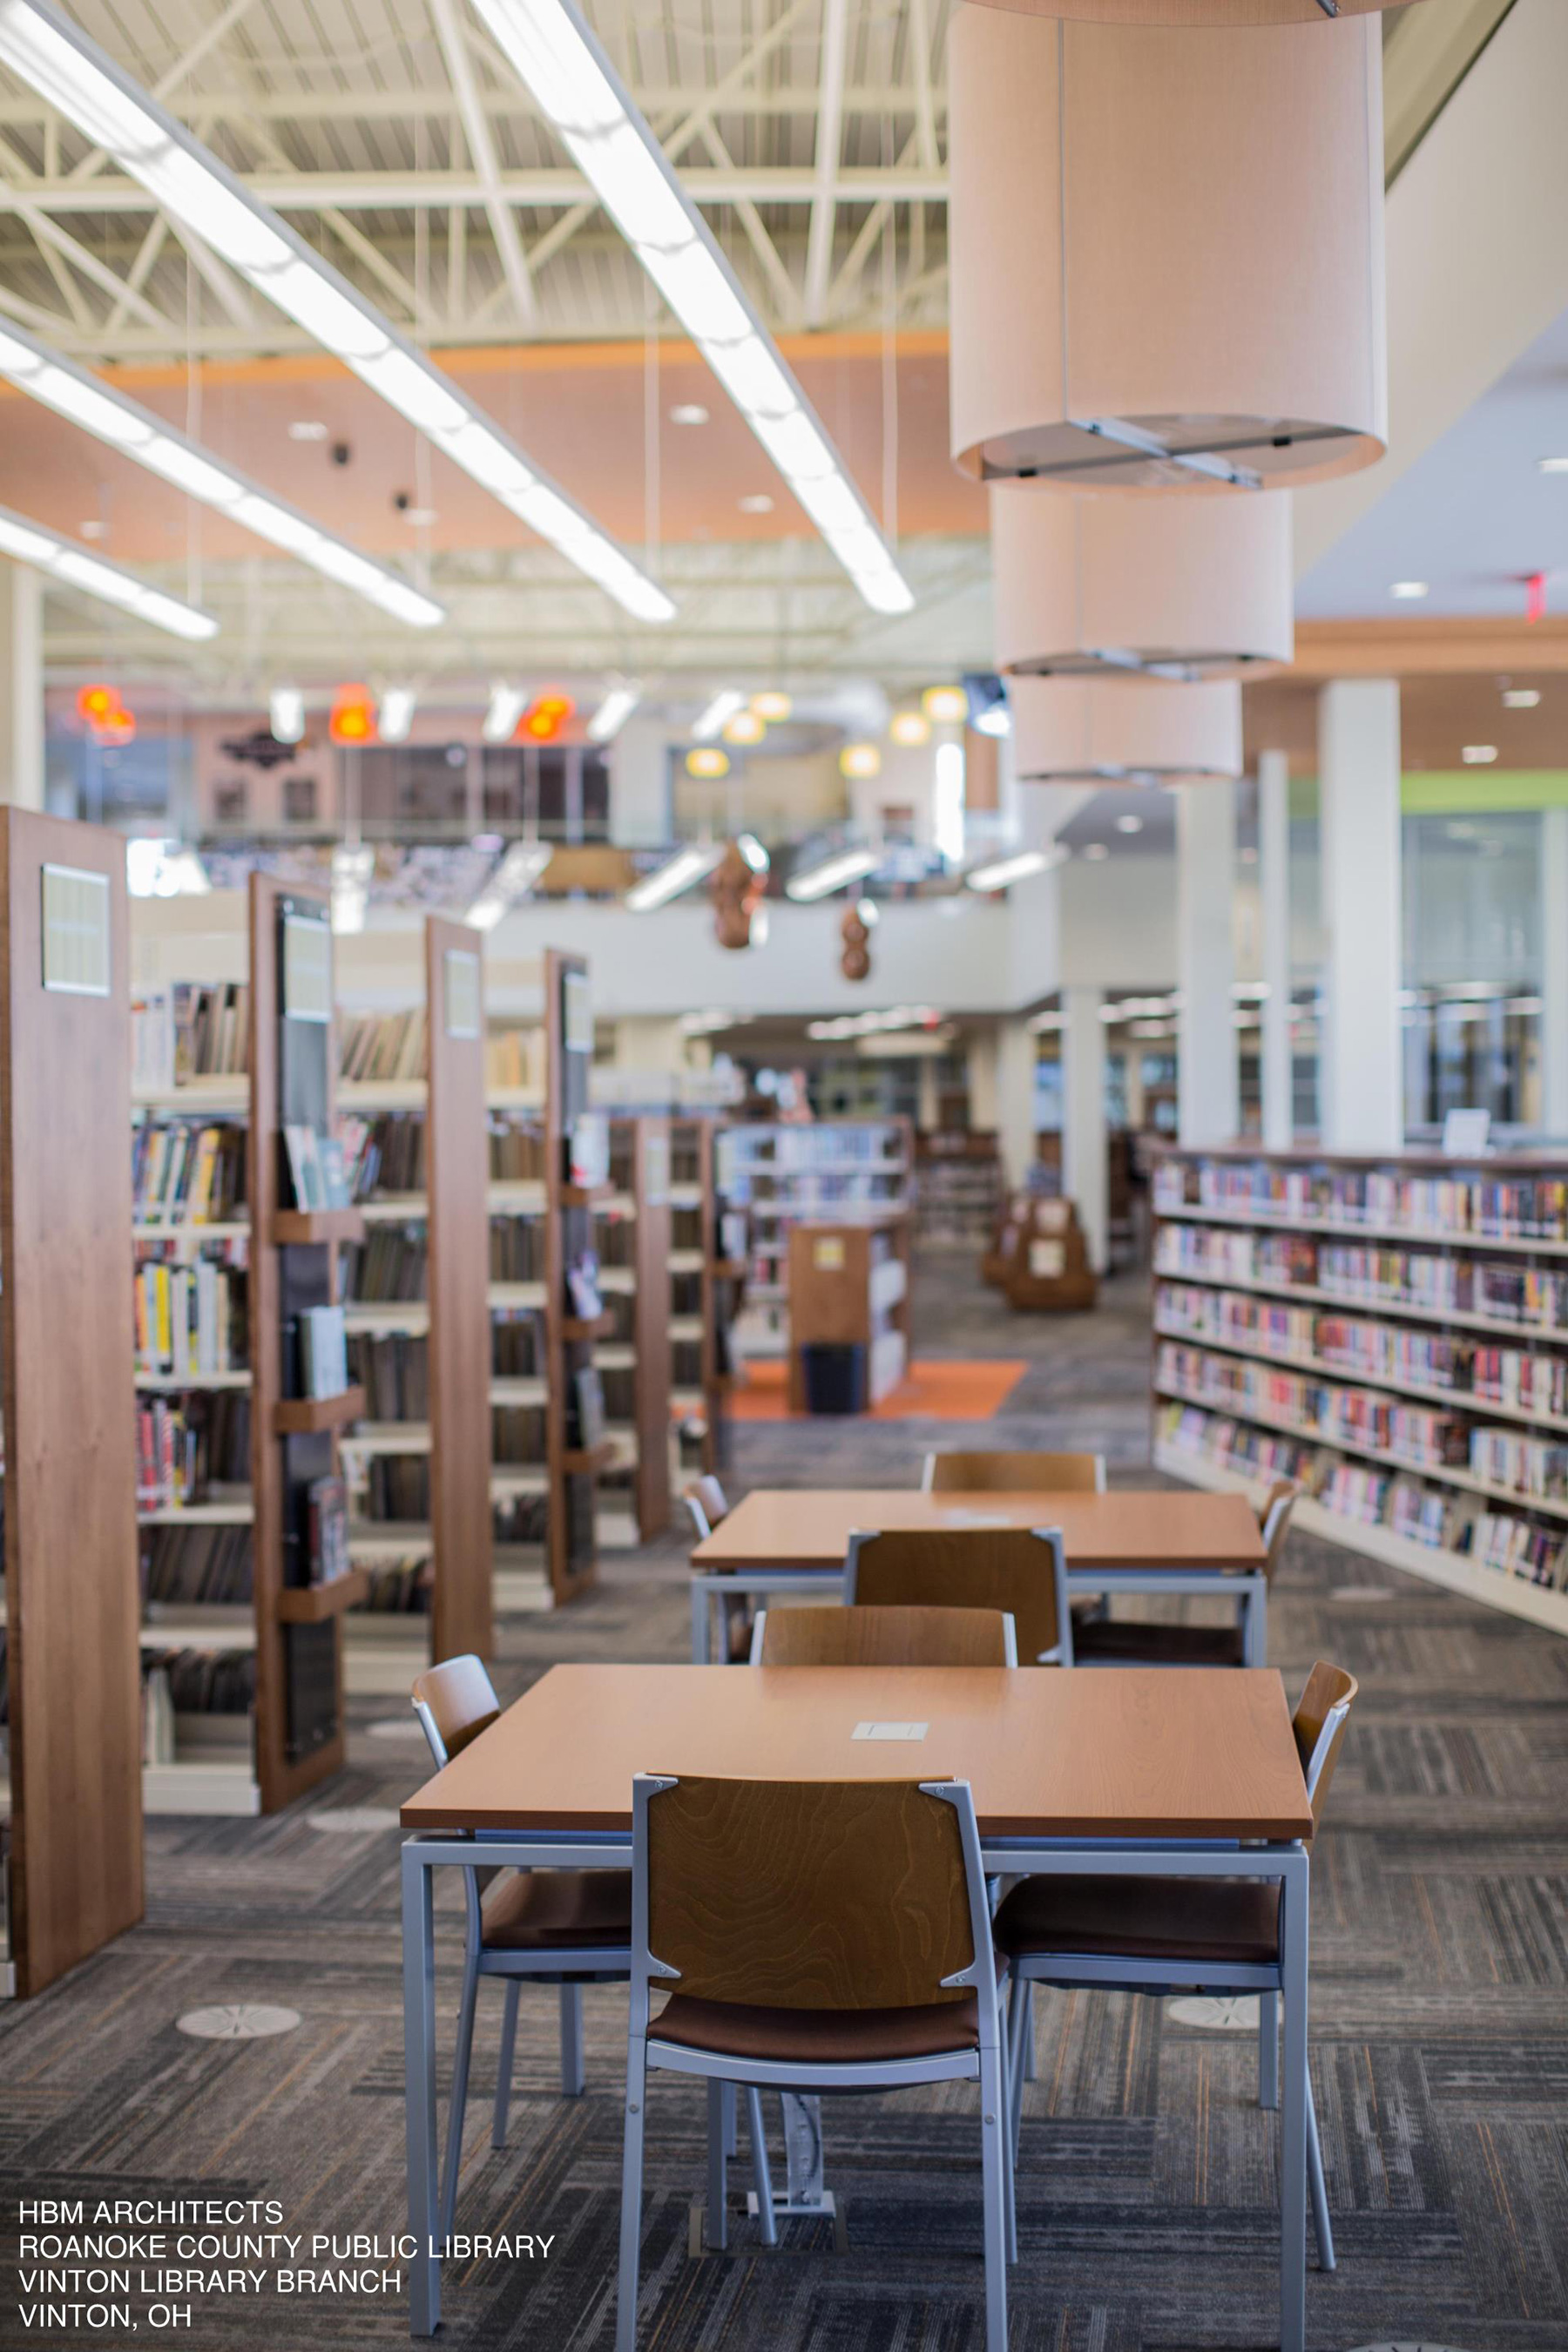 Re Evaluating Existing Library Spaces And Furnishings On A Budget